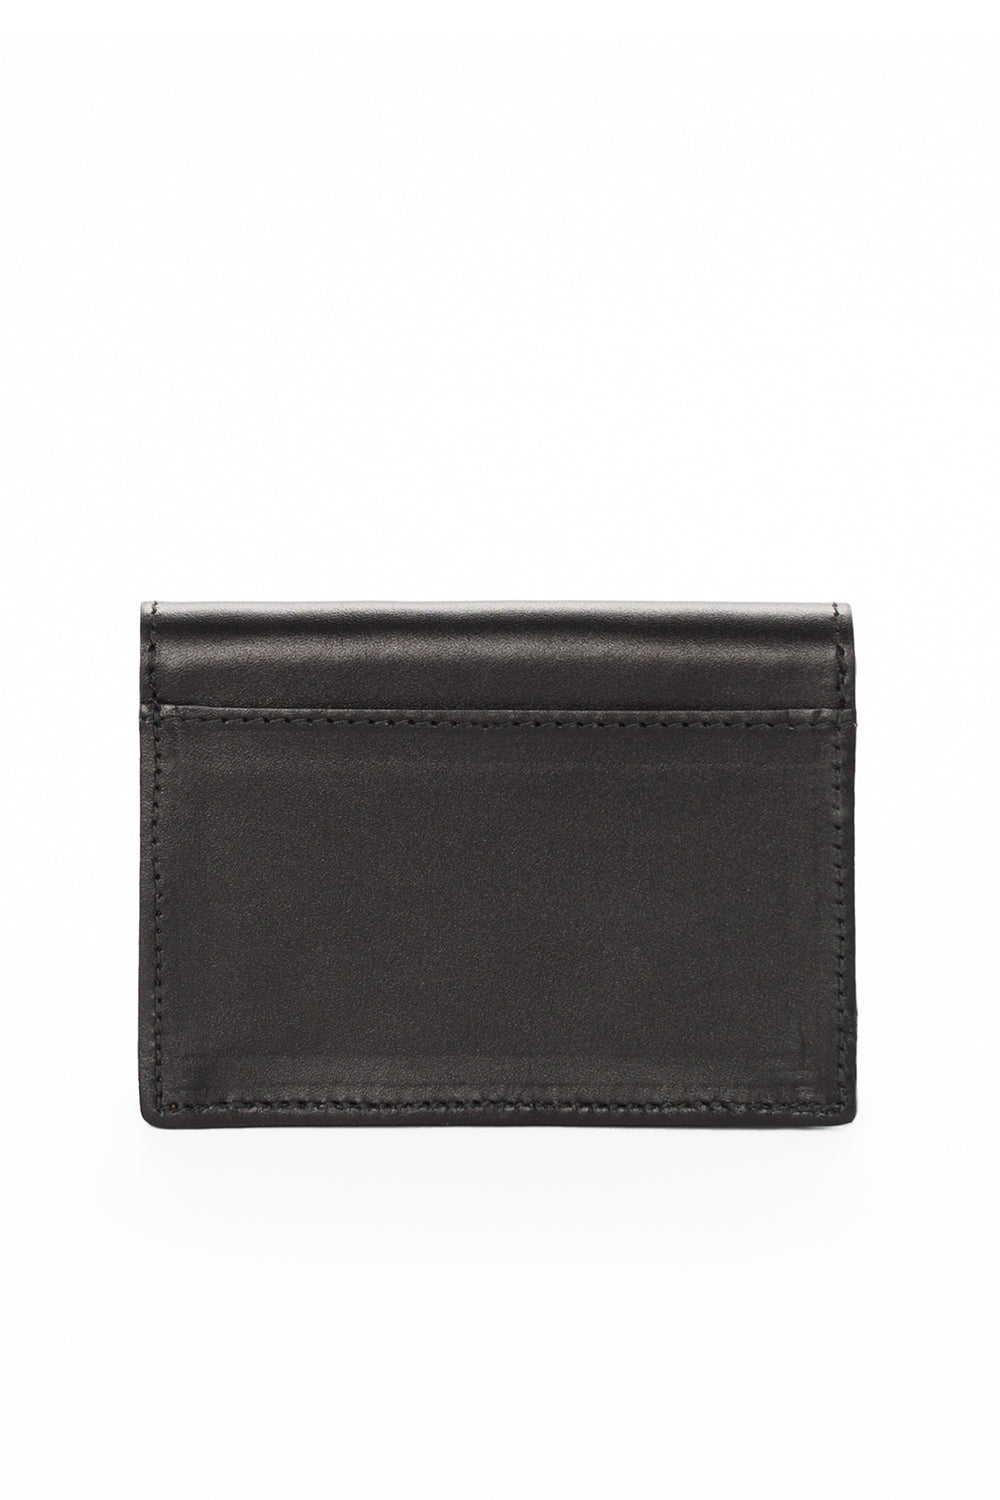 Mel Boteri | 'Leave A Little Sparkle' Cardholder | Black Leather | Back